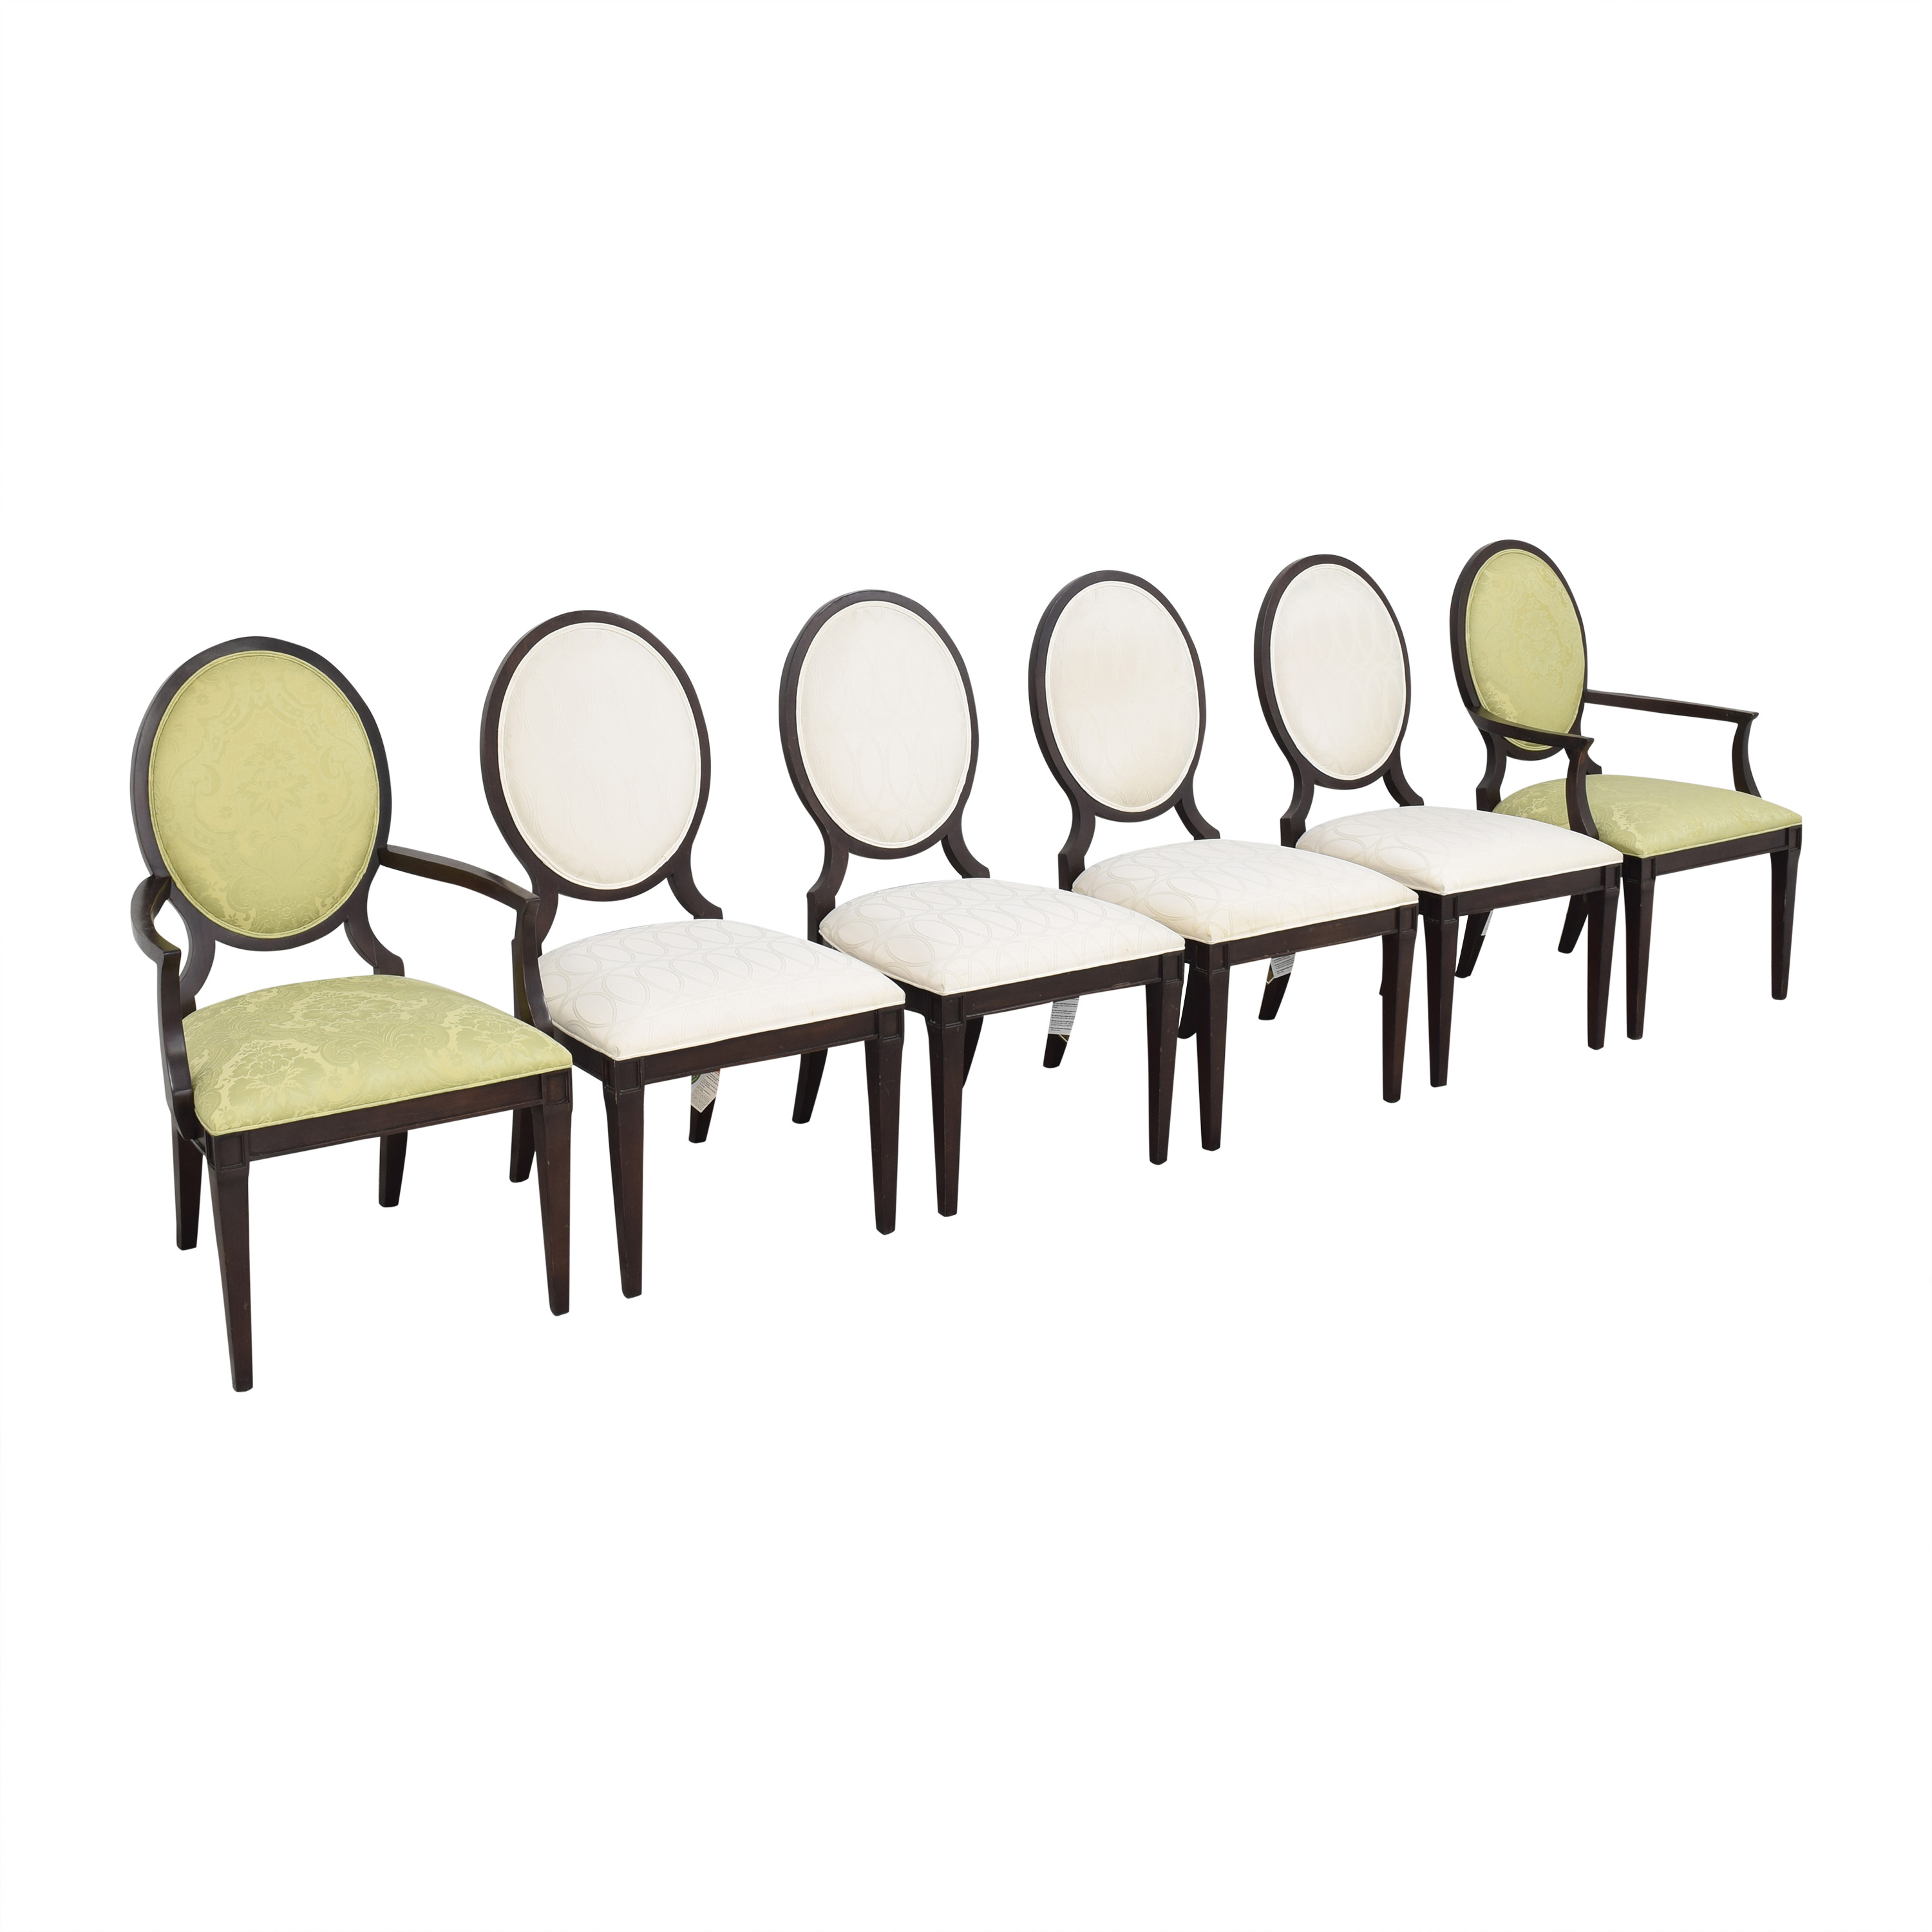 buy Ethan Allen Lindsay Dining Chairs Ethan Allen Chairs